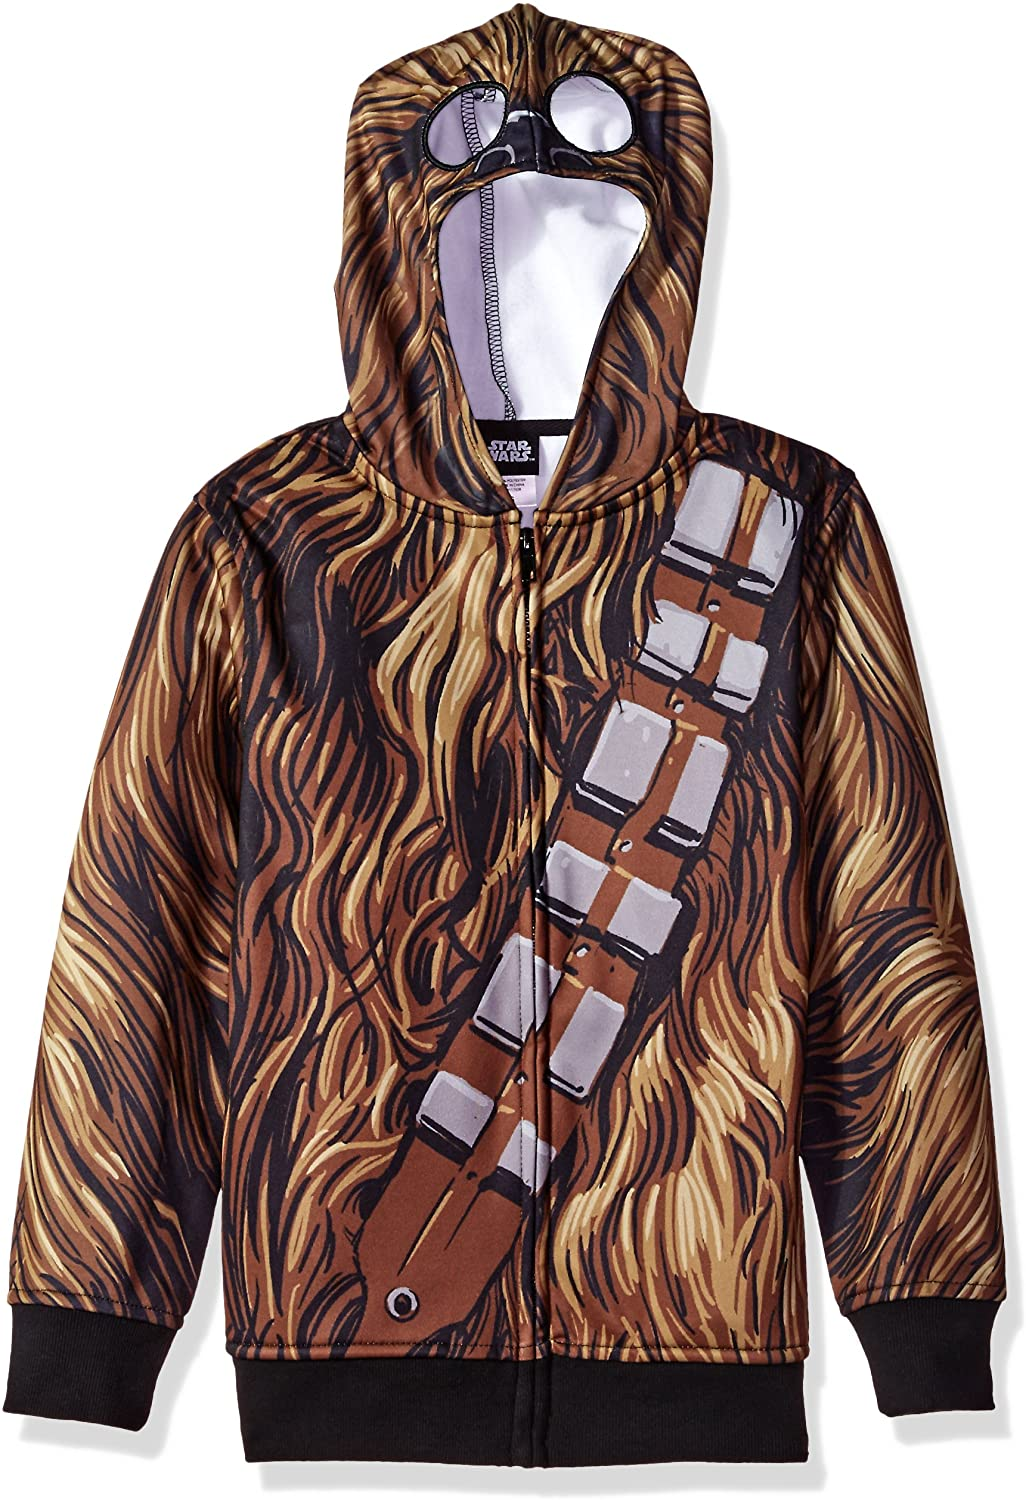 Star Wars Hoodie For Kids